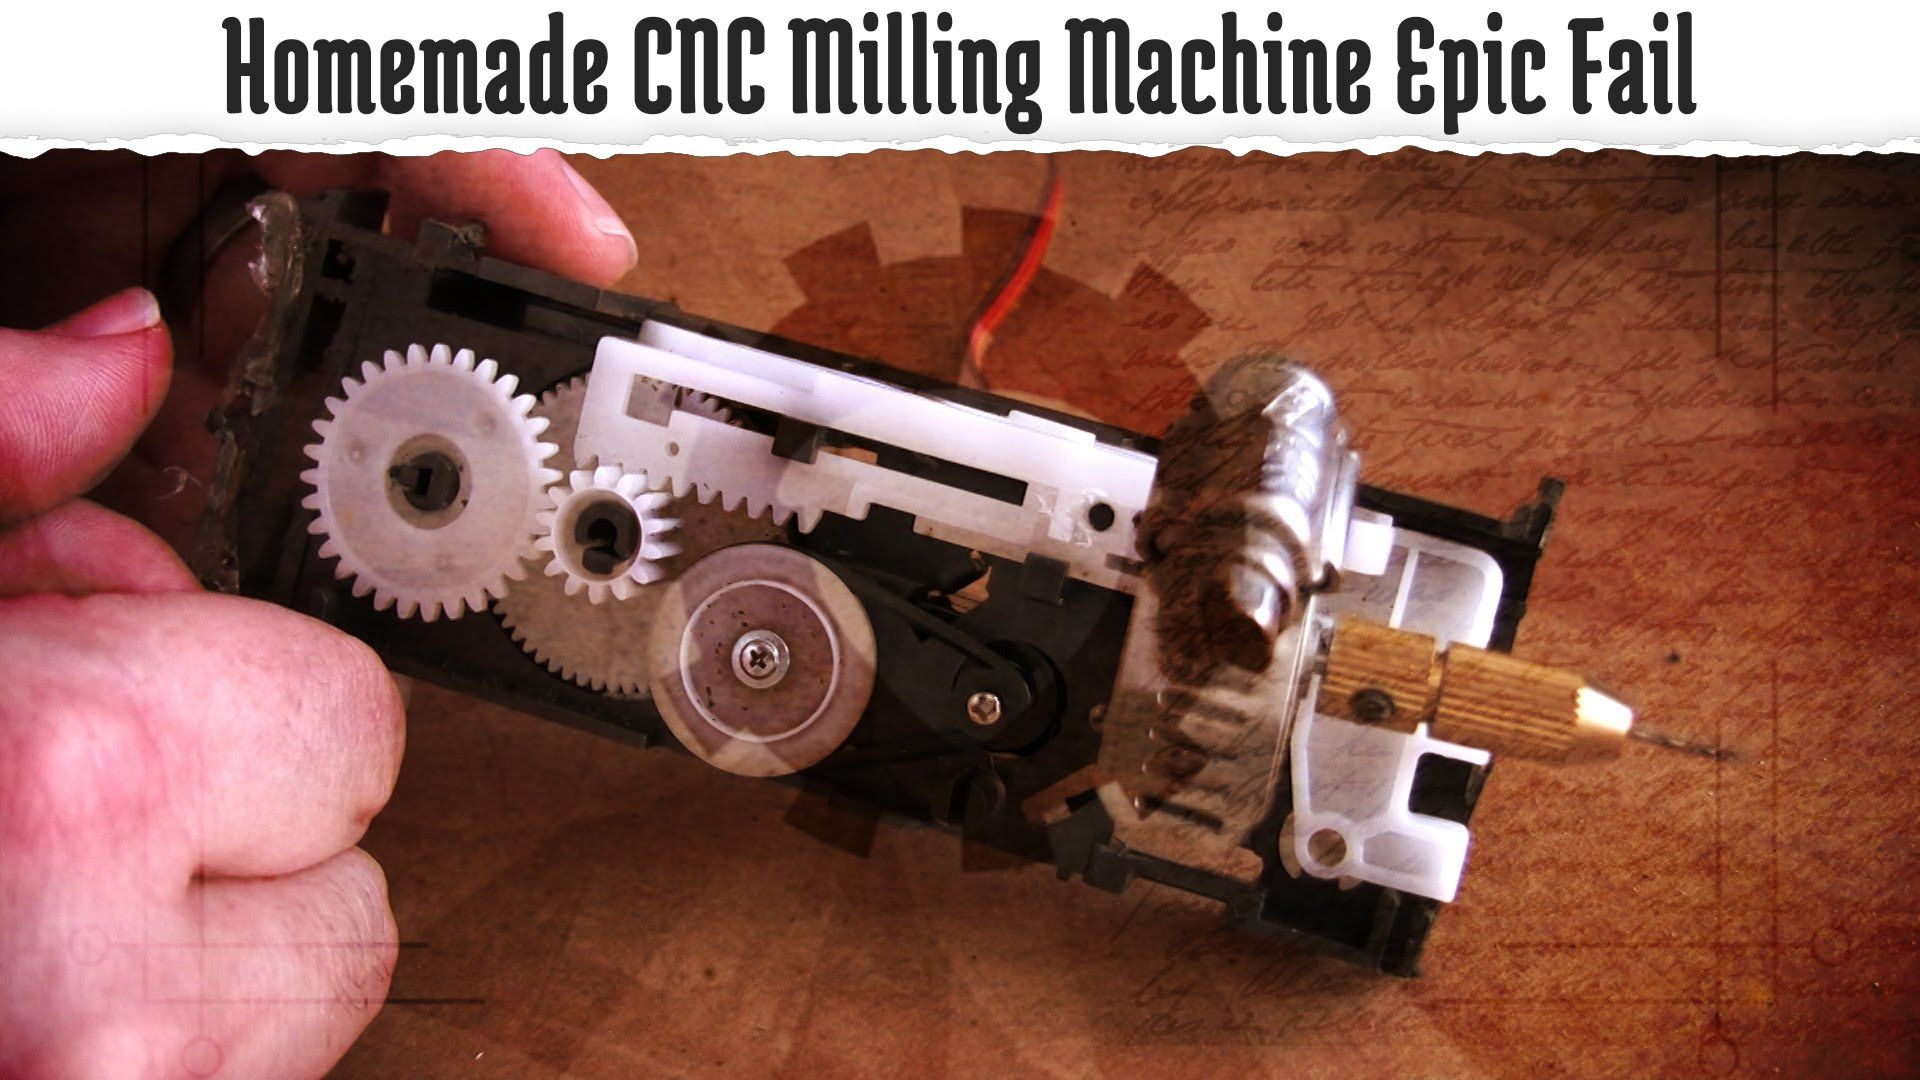 Homemade CNC Milling Machine Epic Fail | Reaping The Best Buzz | Cnc